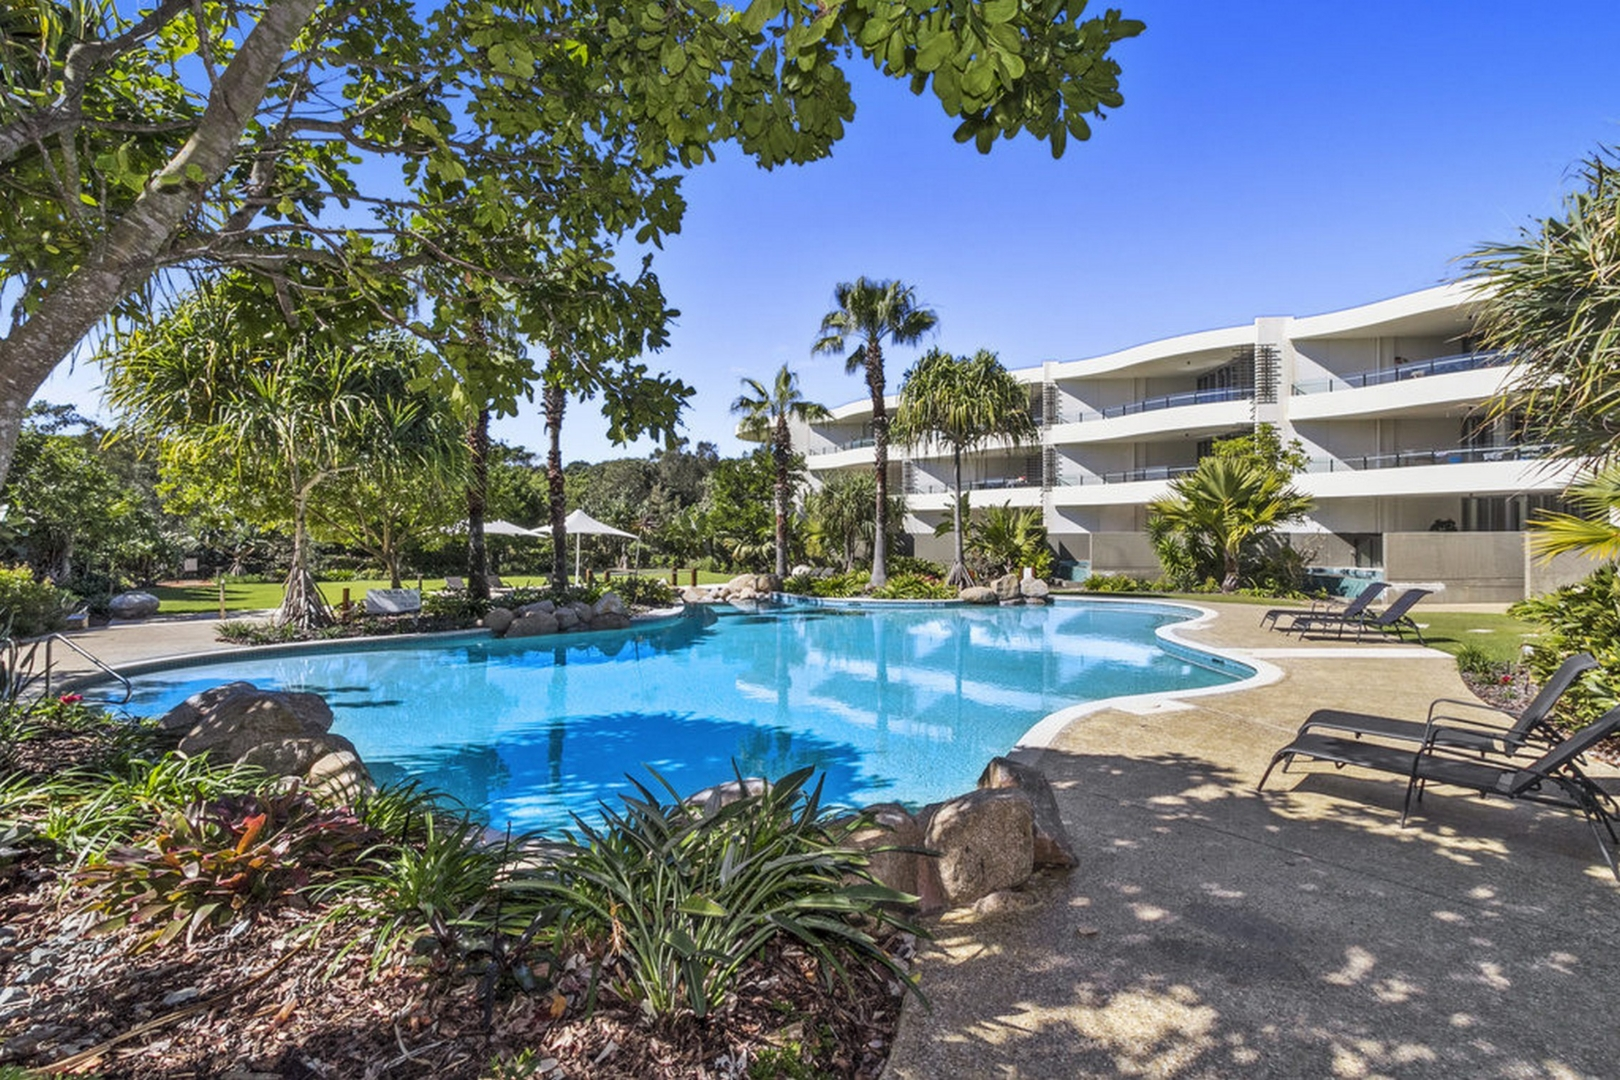 LUXURIOUS APARTMENT WITH PRIVATE PLUNGE POOL IN CASUARINA - 20% OFF!!